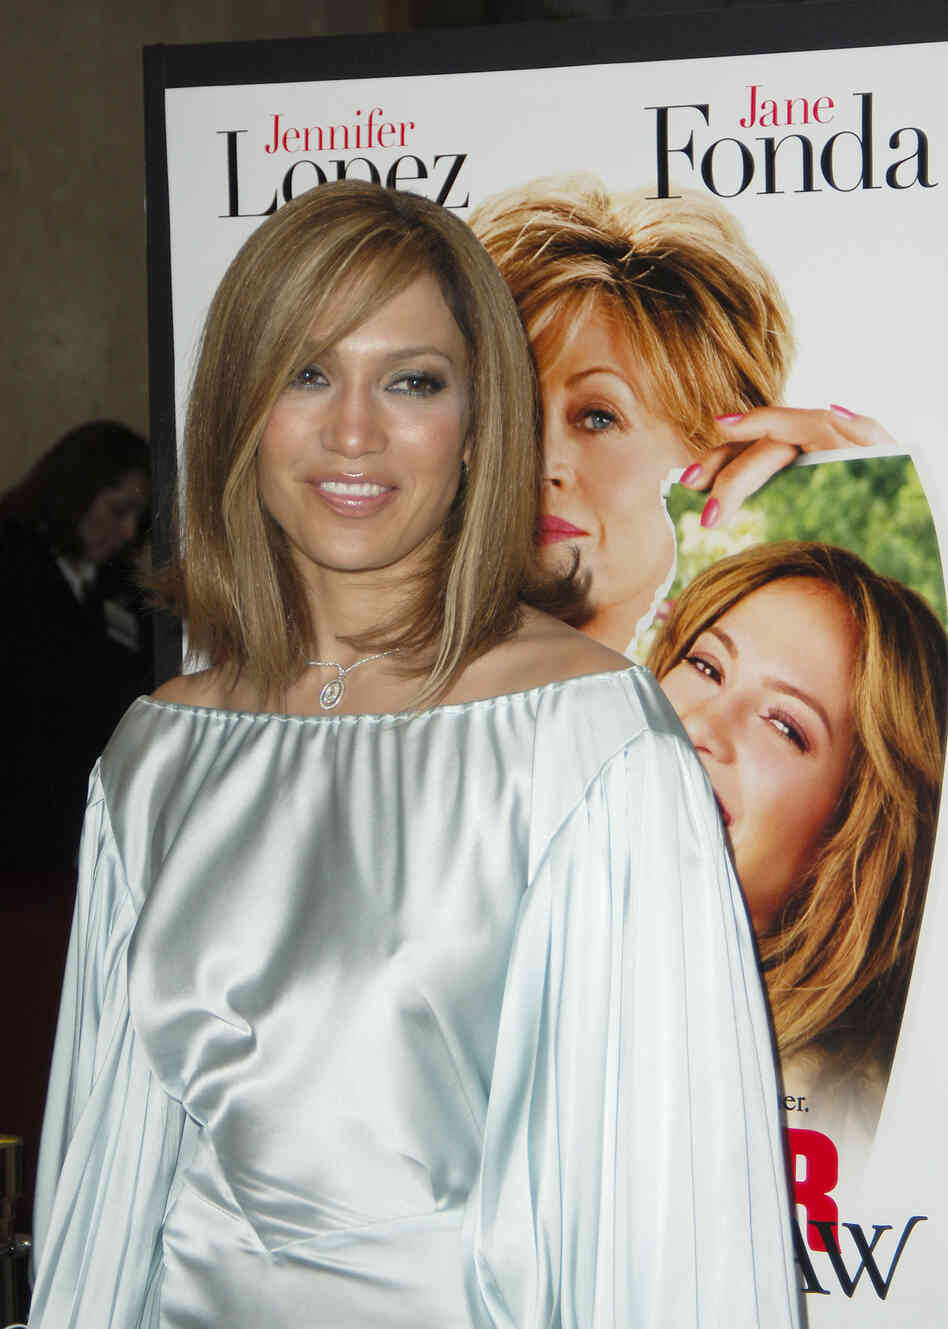 Jennifer Lopez back in 2005 when Monster-In-Law was just coming out. An old video of the movie has landed a South Carolina woman in trouble with the law.